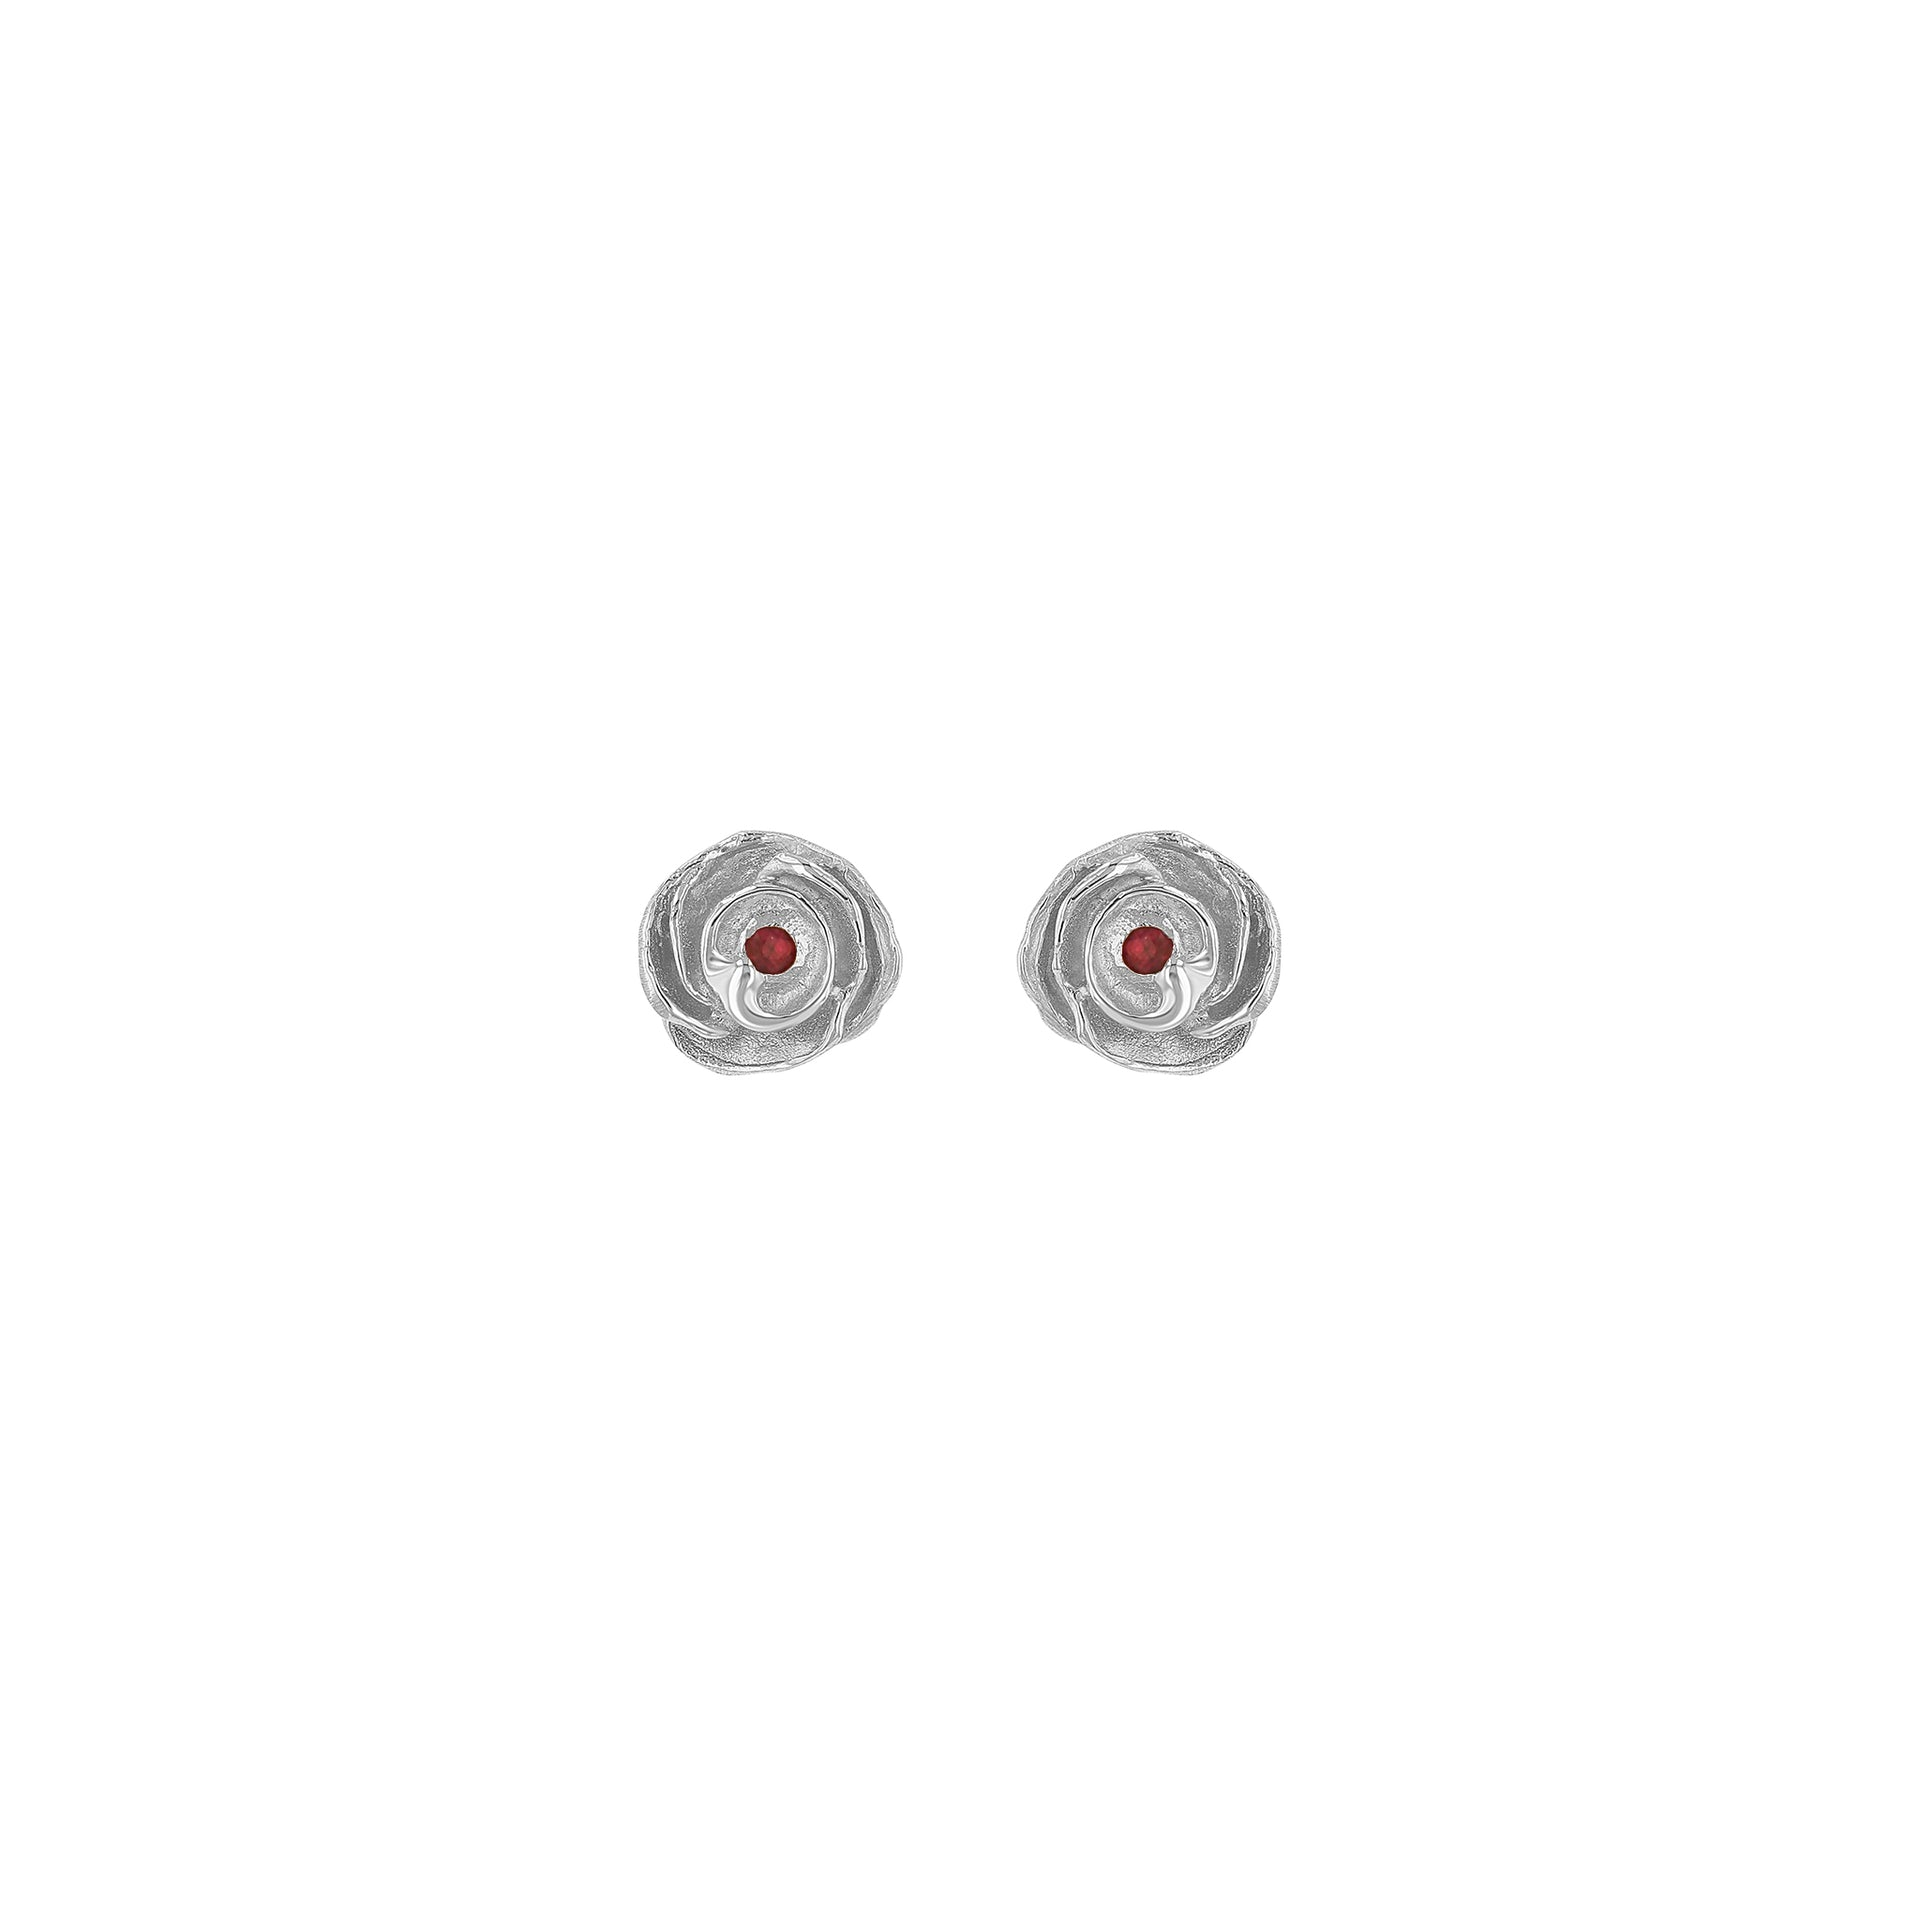 Ruby Rose Stud Earrings